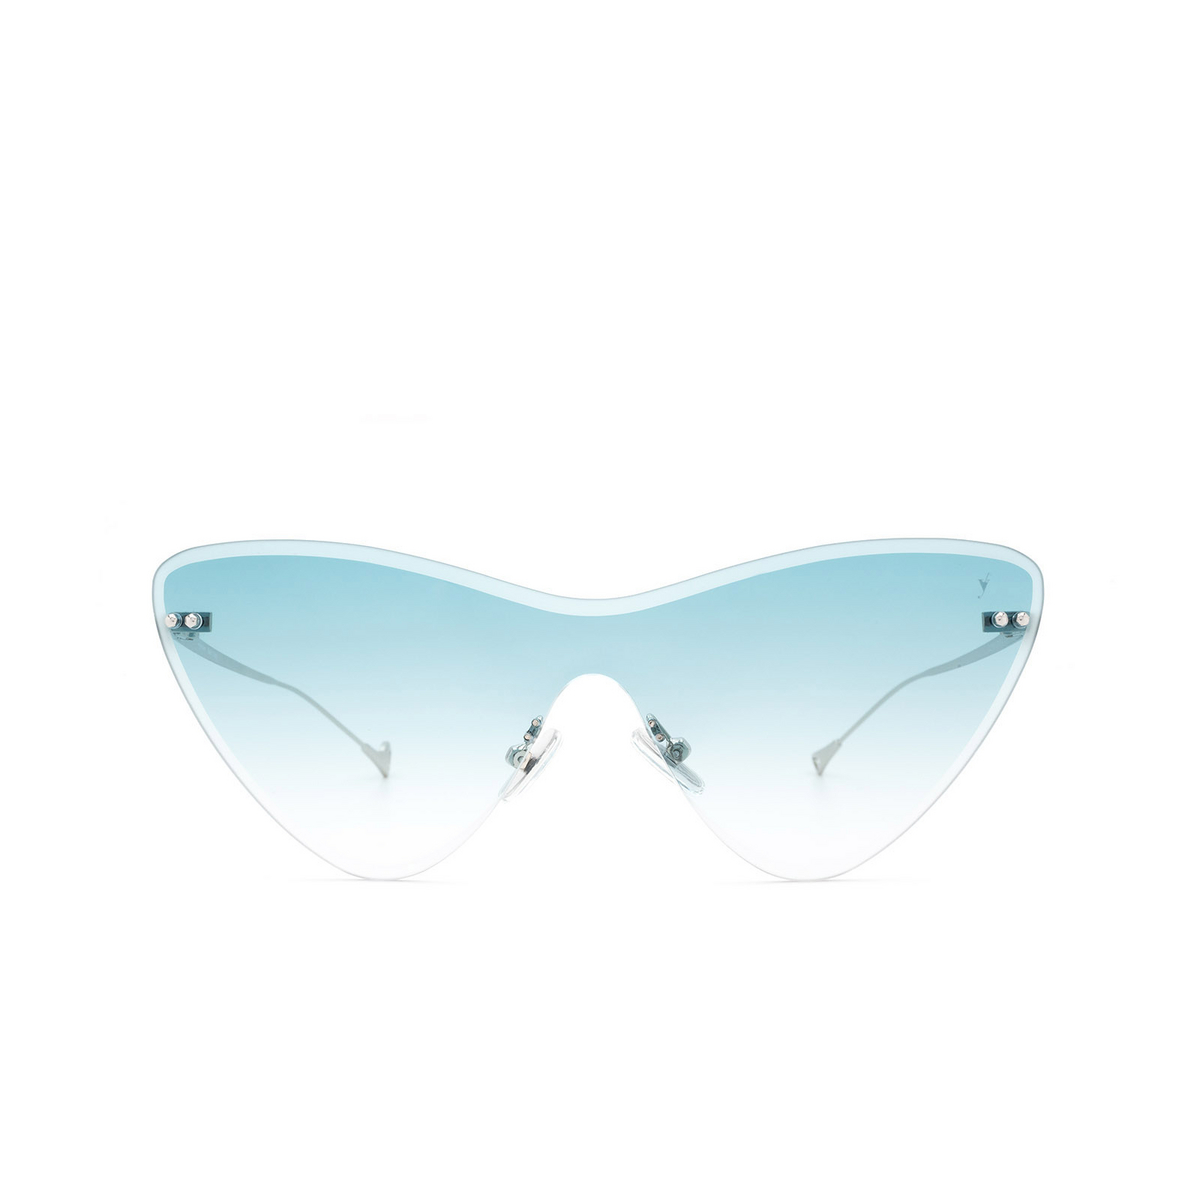 Eyepetizer® Mask Sunglasses: Ocean color Silver C.1-21 - front view.